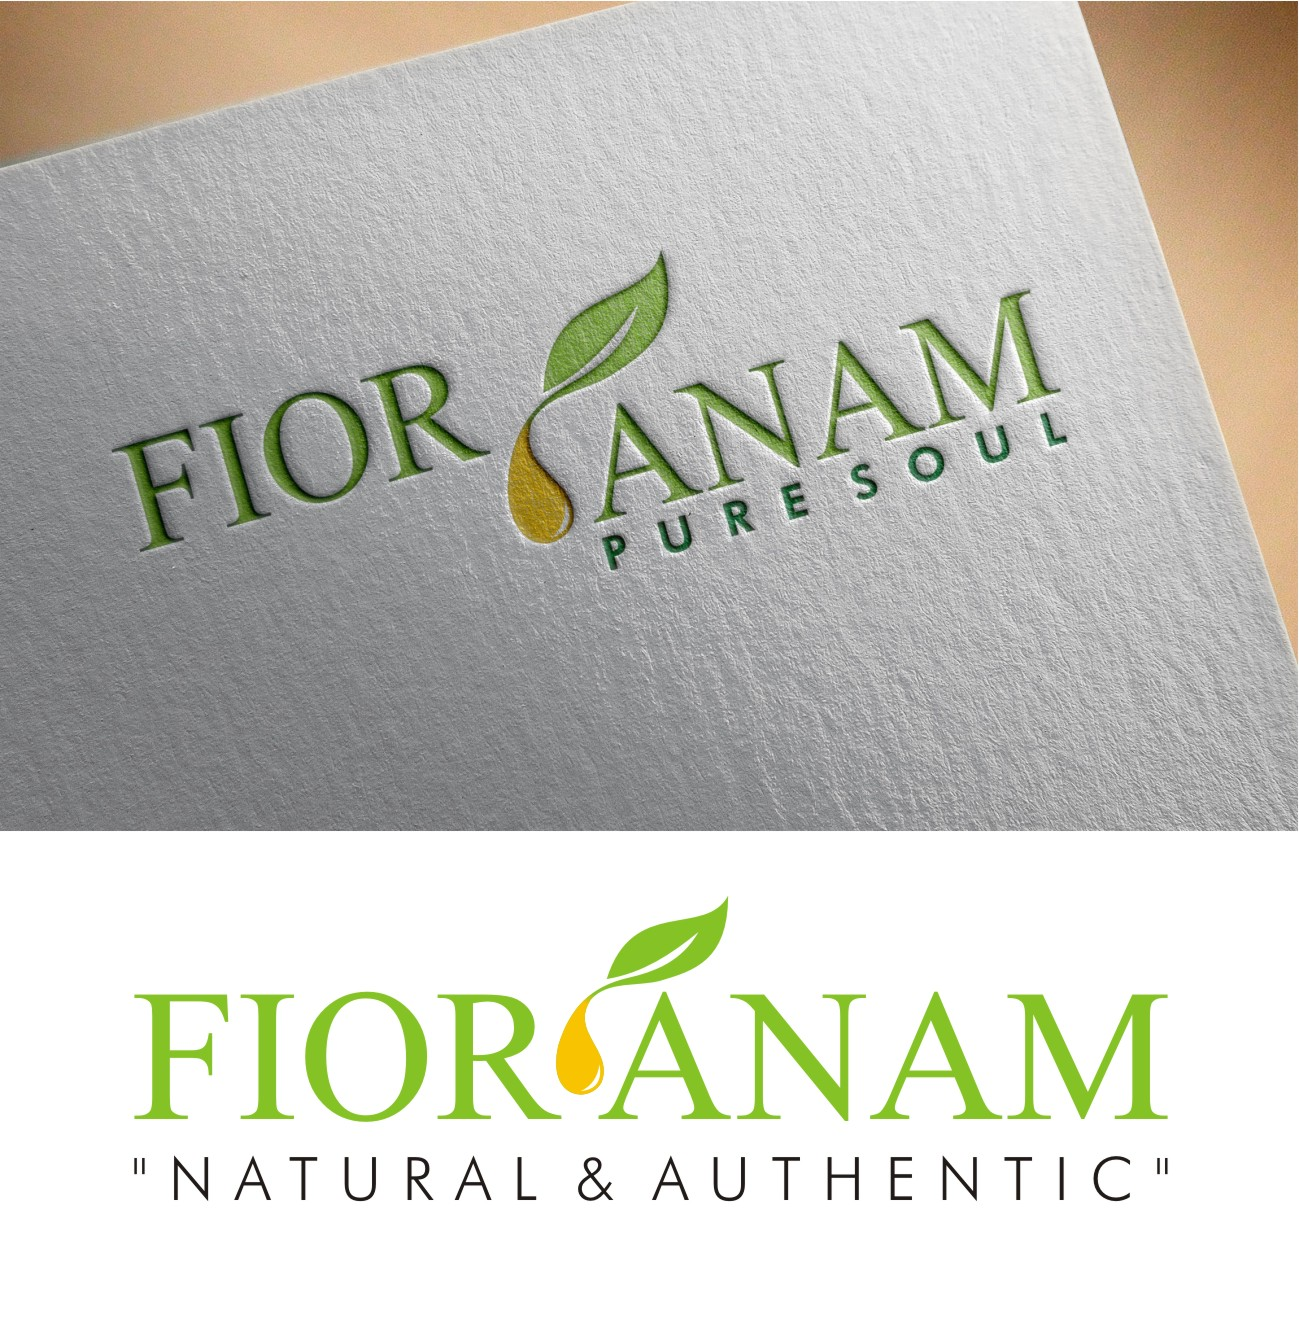 Logo Design by I graphics GRAPHICS - Entry No. 391 in the Logo Design Contest Creative Logo Design for Fior Anam.